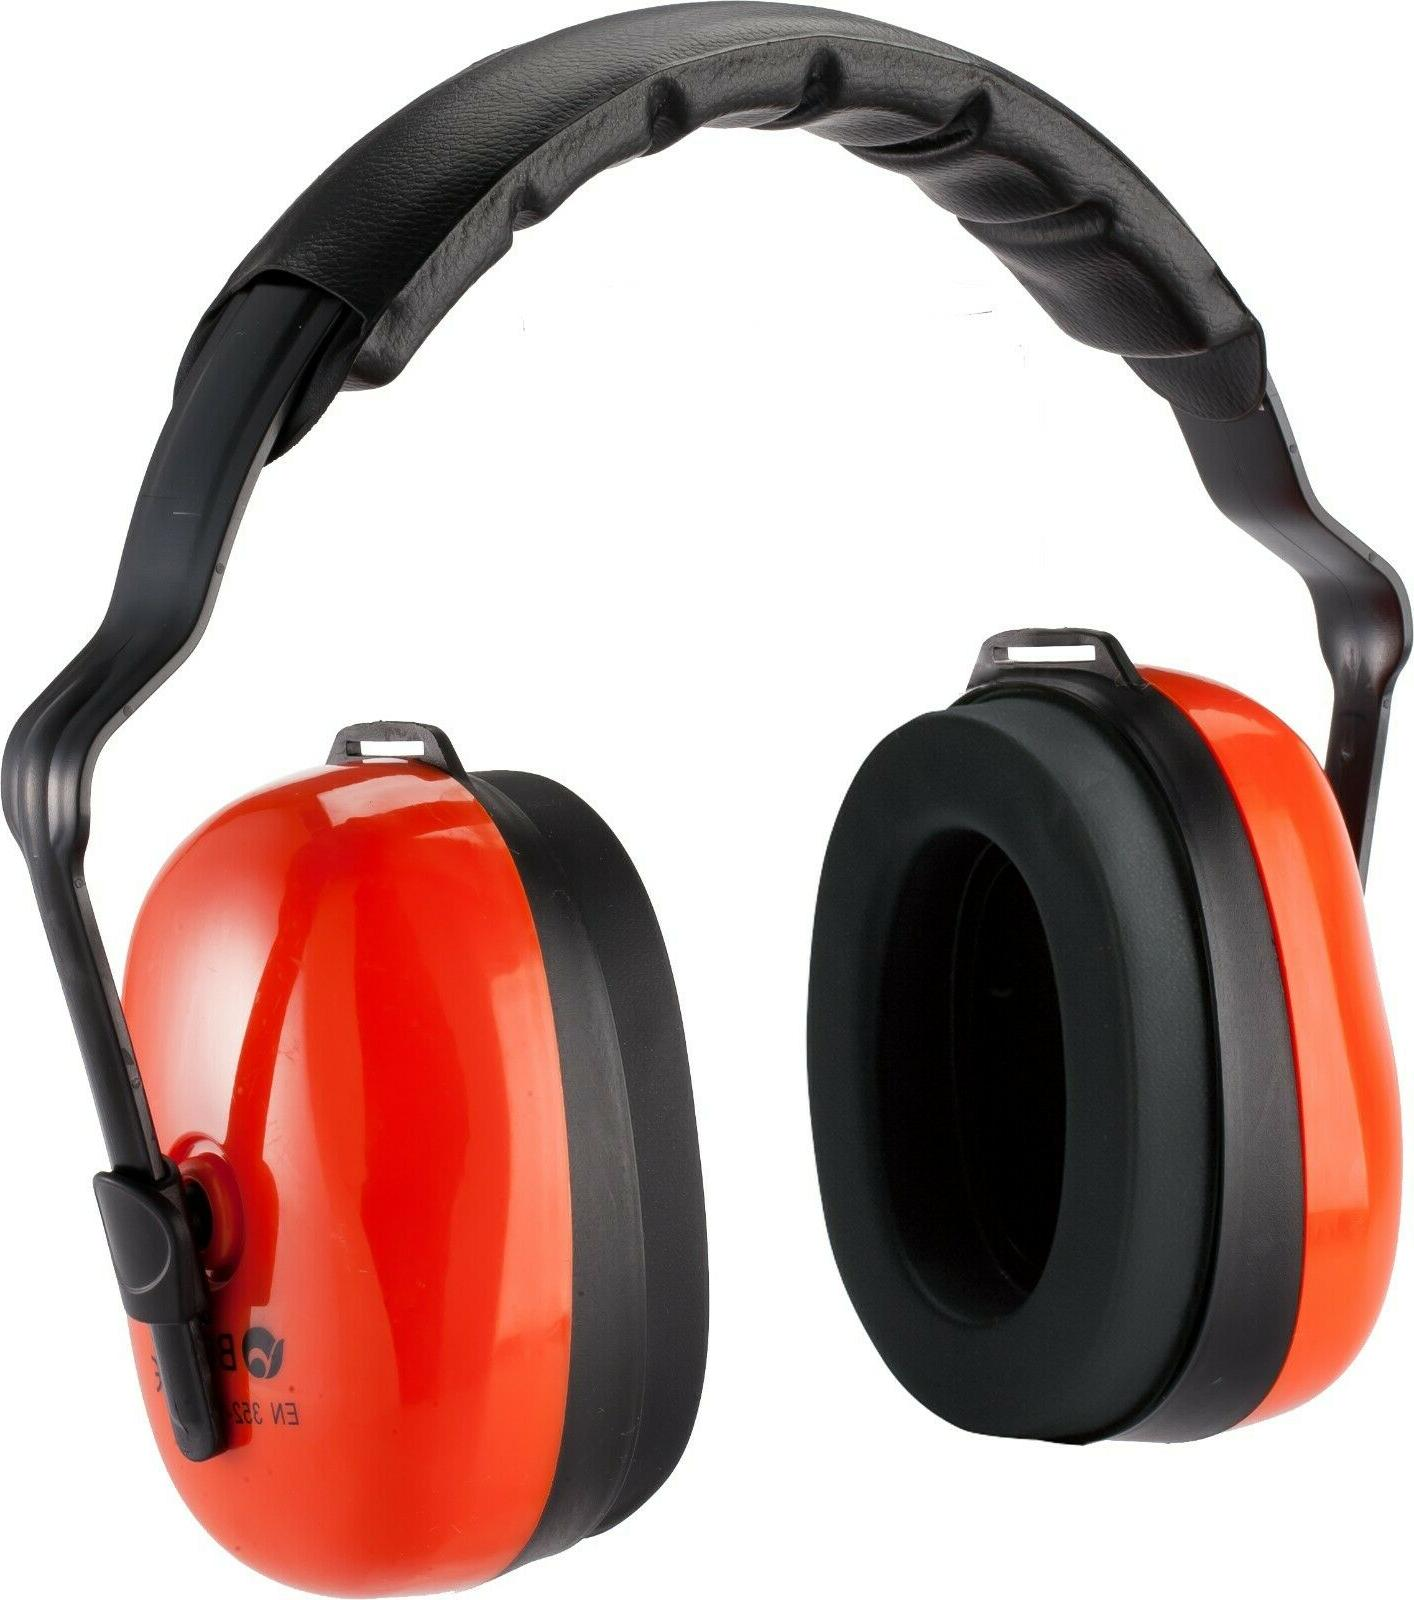 Ear Muffs Hearing Protection Shooting Noise Hunting Work